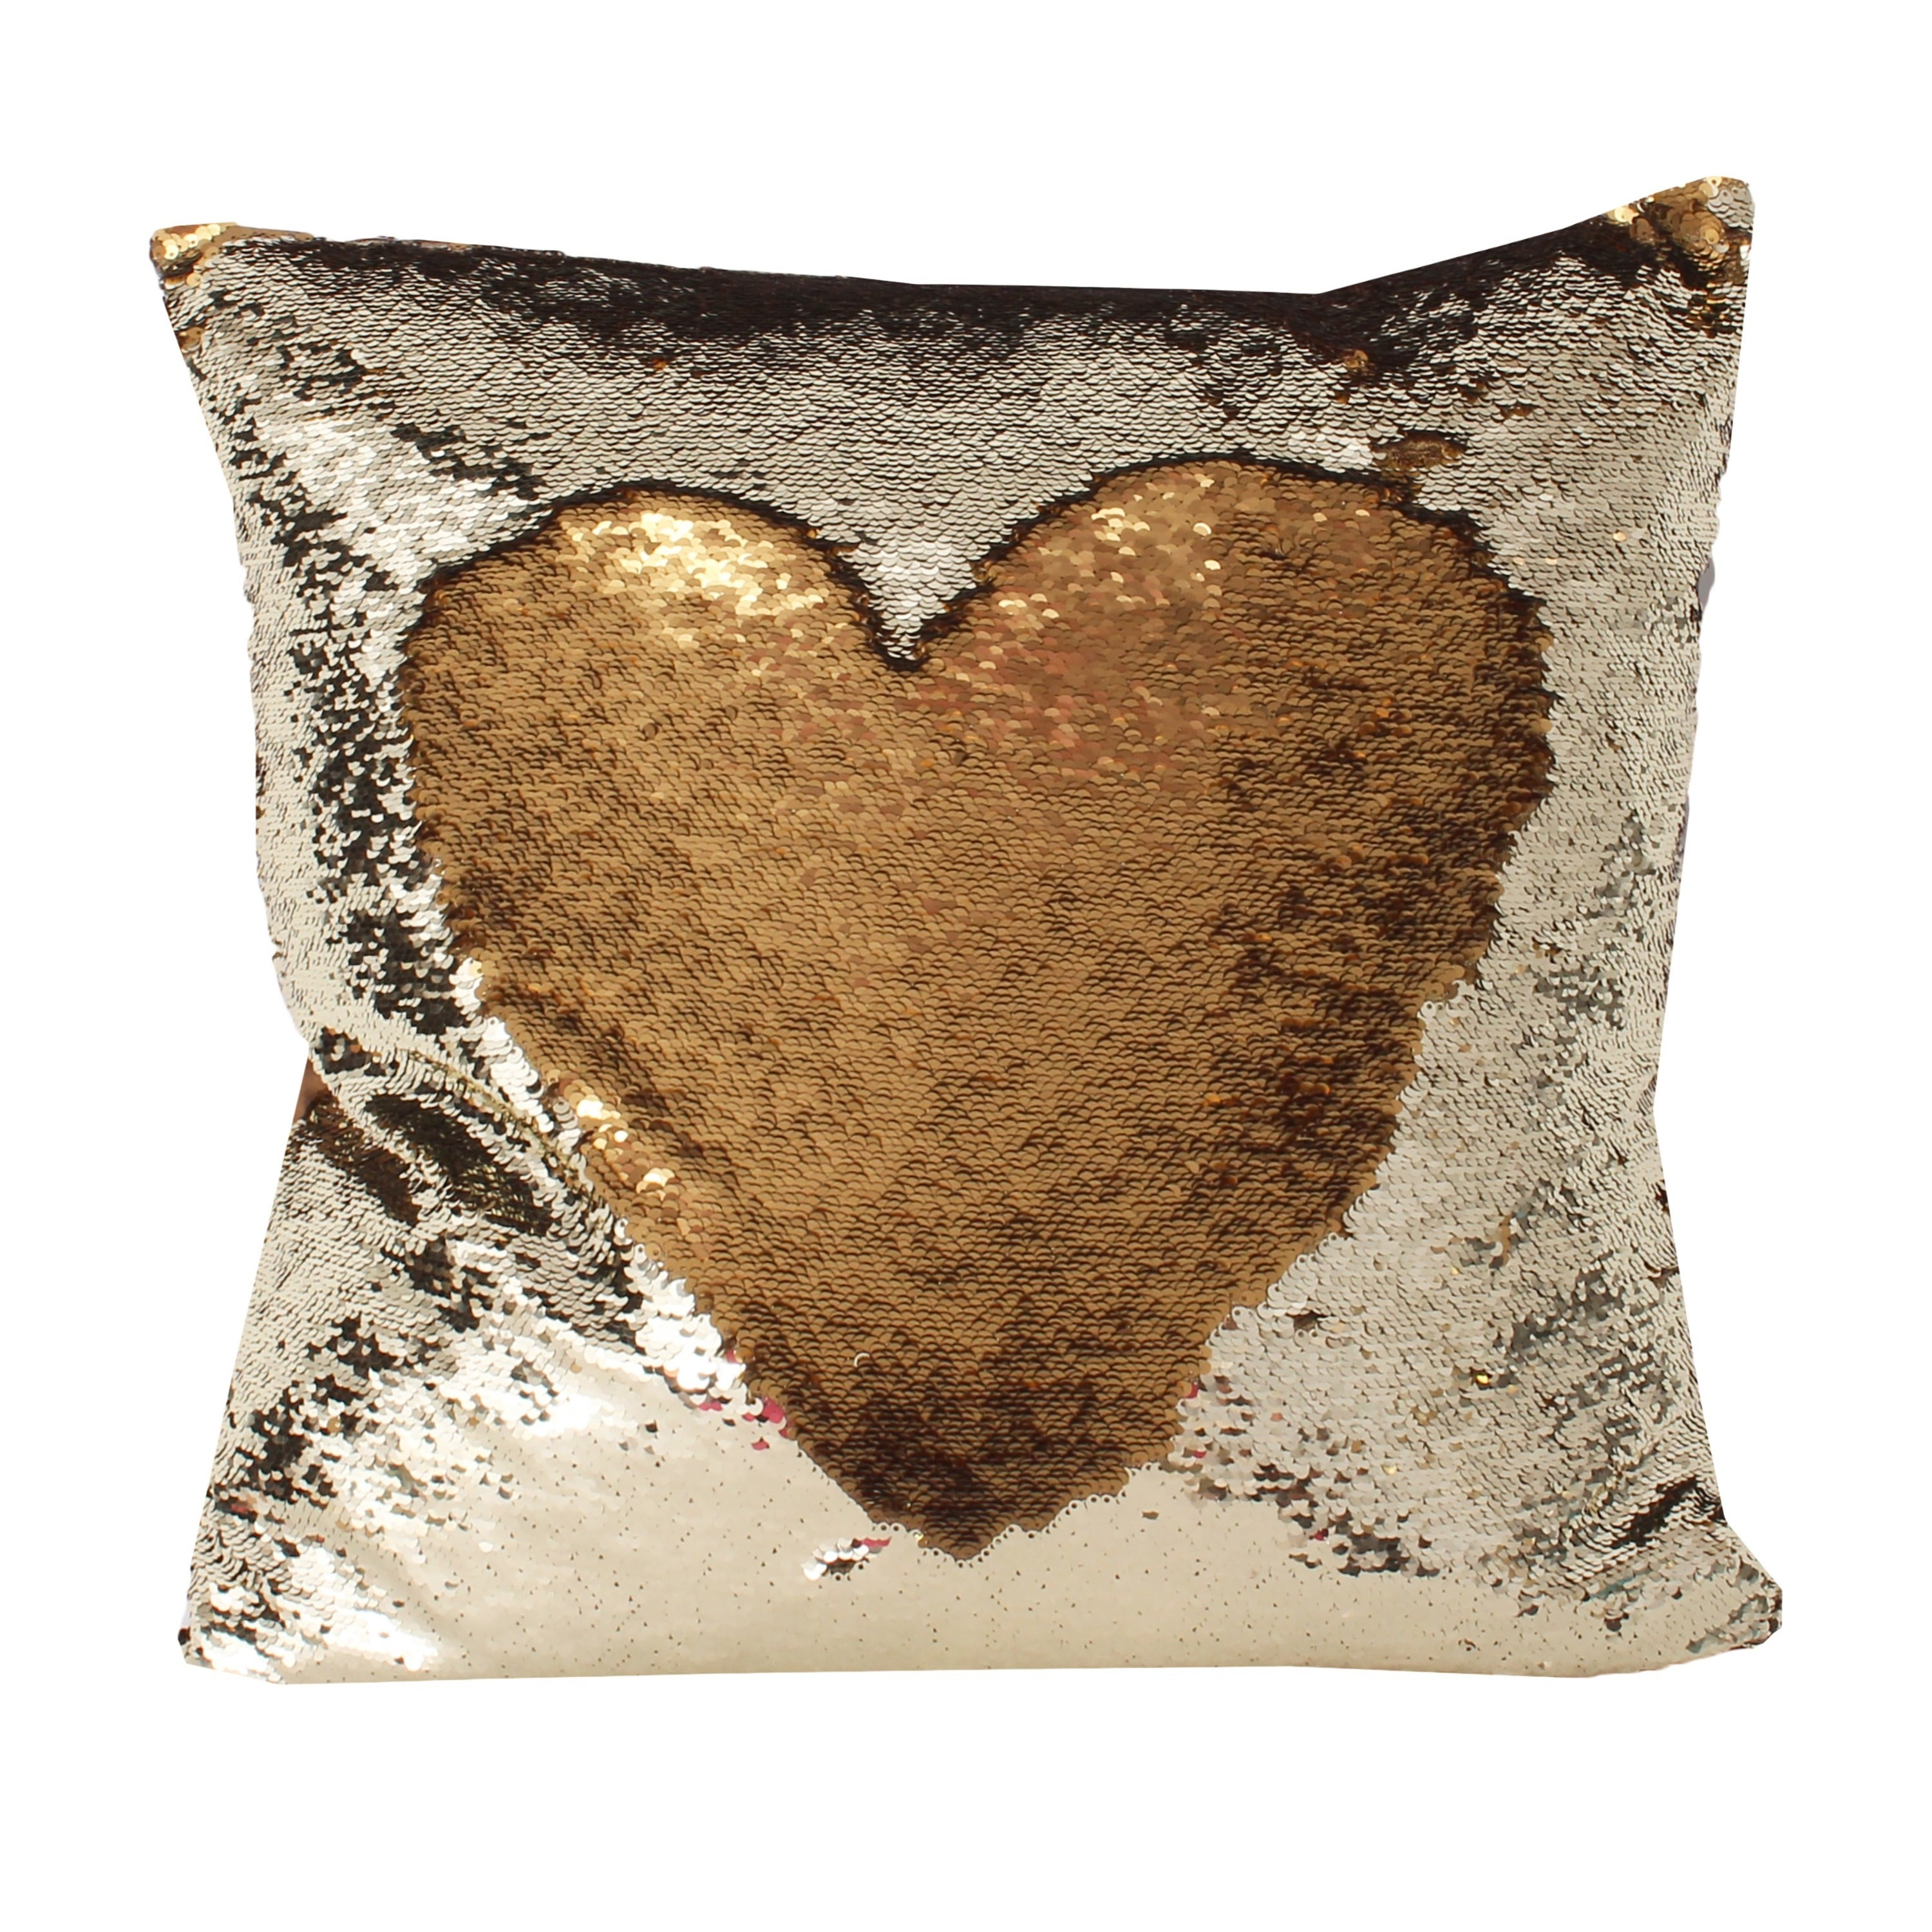 Well-liked Melody Mermaid Reversible Sequin 20-inch Feather-filled Pillow  NV79